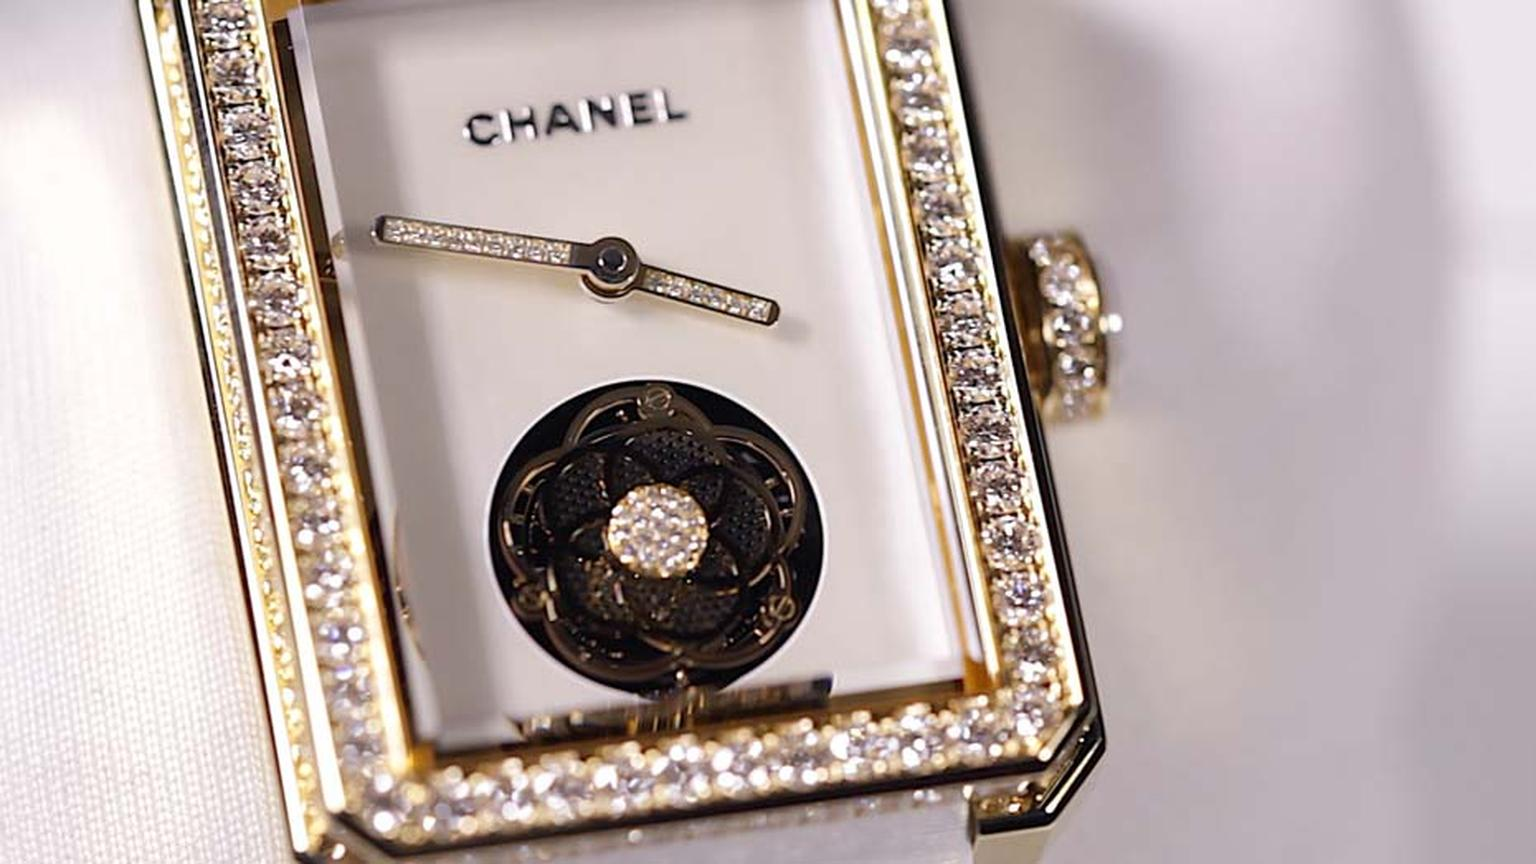 In Chanel's very own beige gold, the second Chanel Premiere Flying Tourbillon watch for 2015 is set with brilliant-cut diamonds. The flying tourbillon movement is decorated with a small camellia, Mademoiselle Chanel's favourite flower.